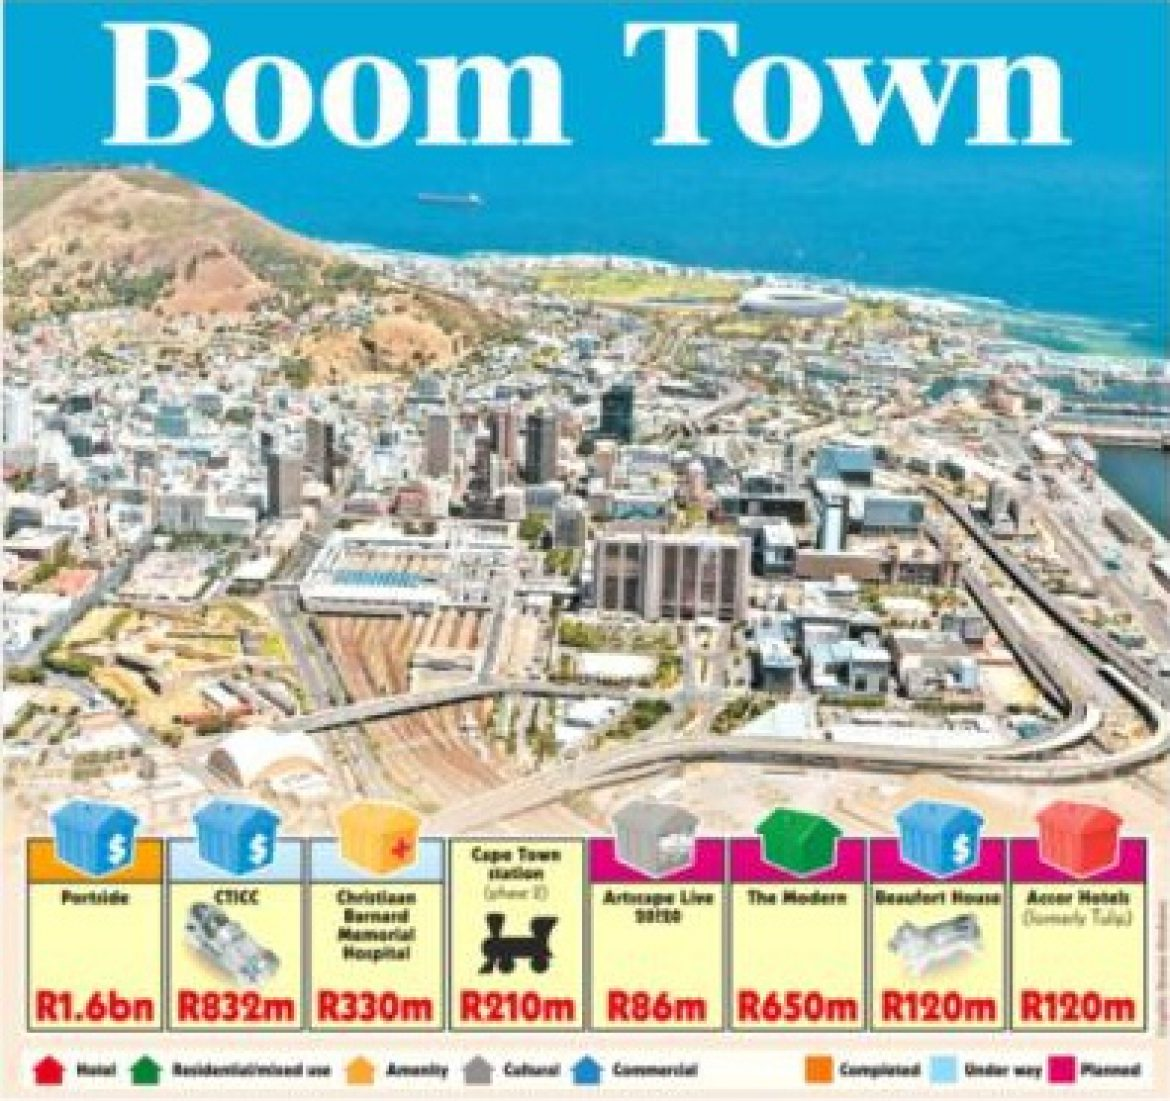 Cape Town CBD is boom town